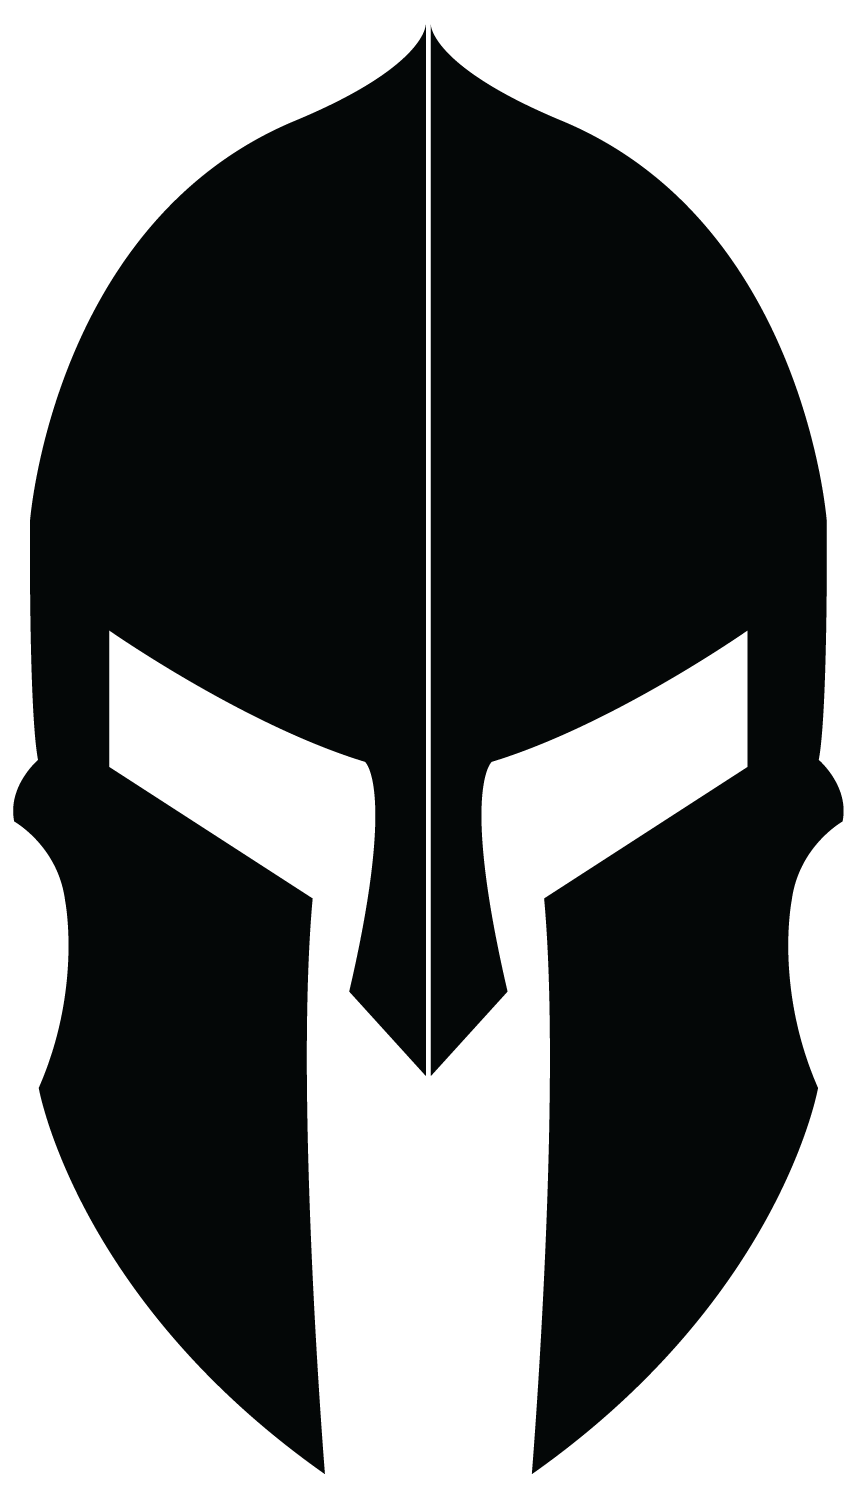 Logo design for spartan. Clipart gun helmet